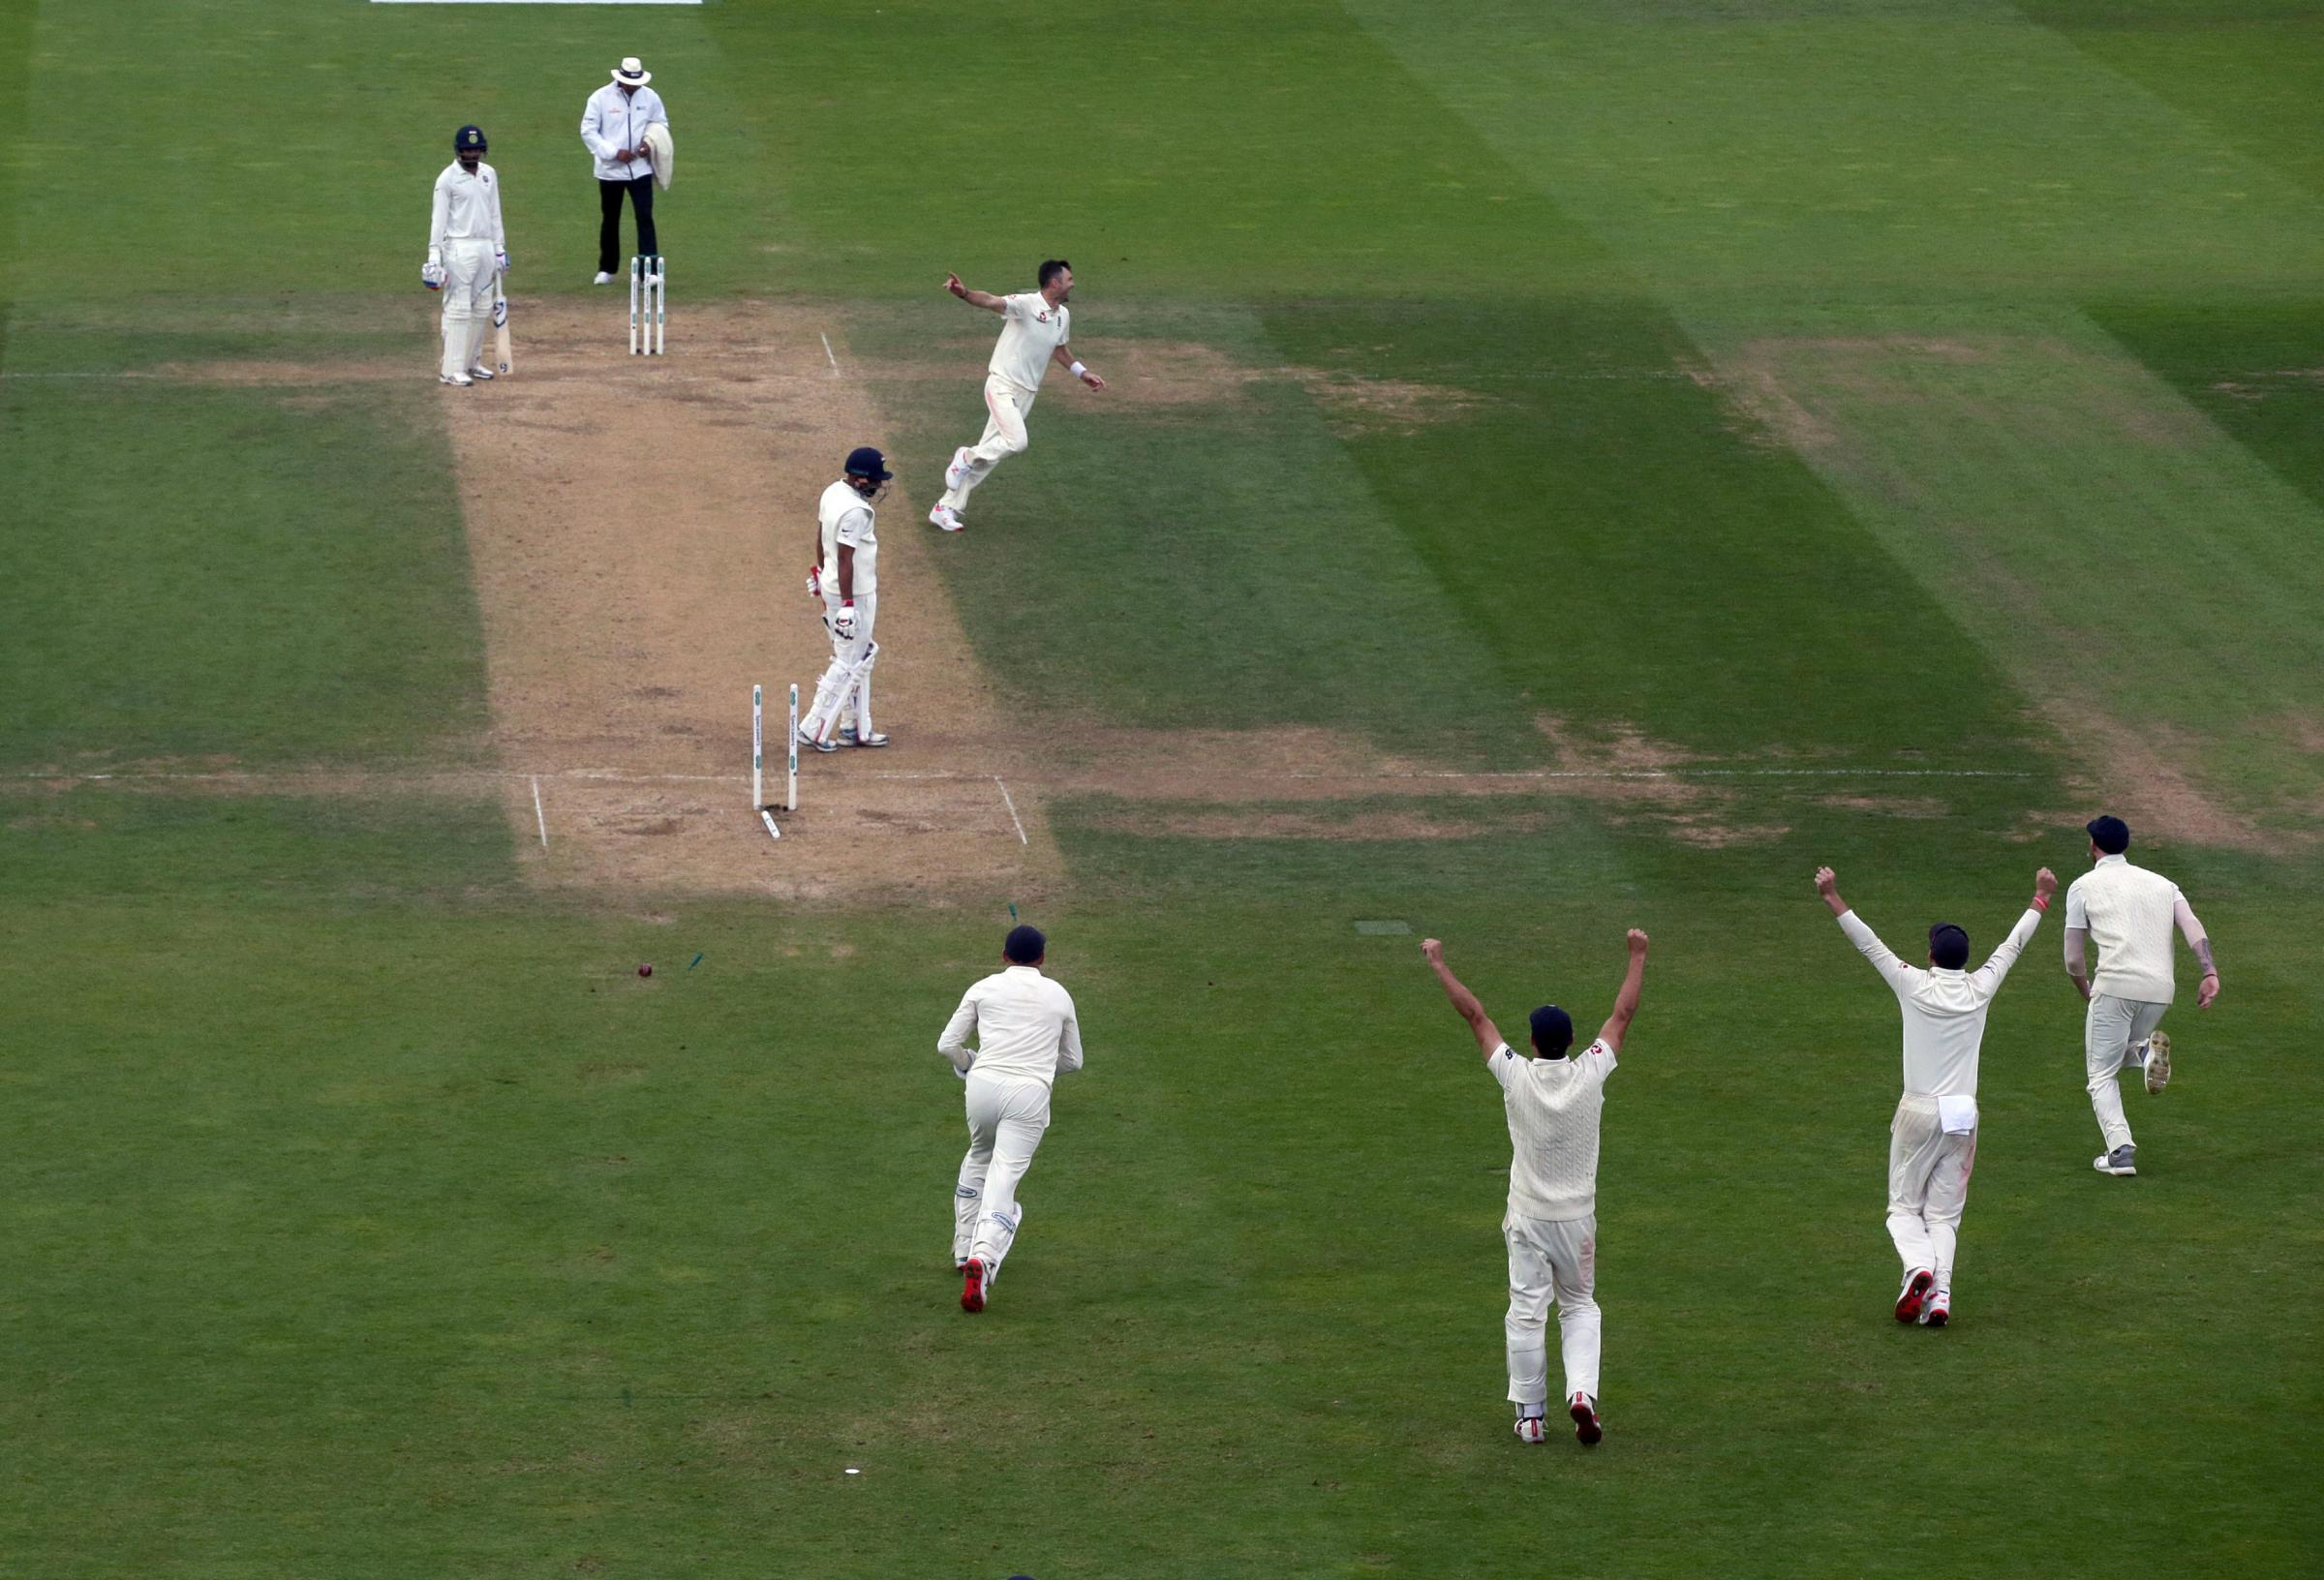 England's James Anderson celebrates taking the last wicket during the test match at The Kia Oval, London. PRESS ASSOCIATION Photo. Picture date: Tuesday September 11, 2018. See PA story CRICKET England. Photo credit should read: Adam Dav